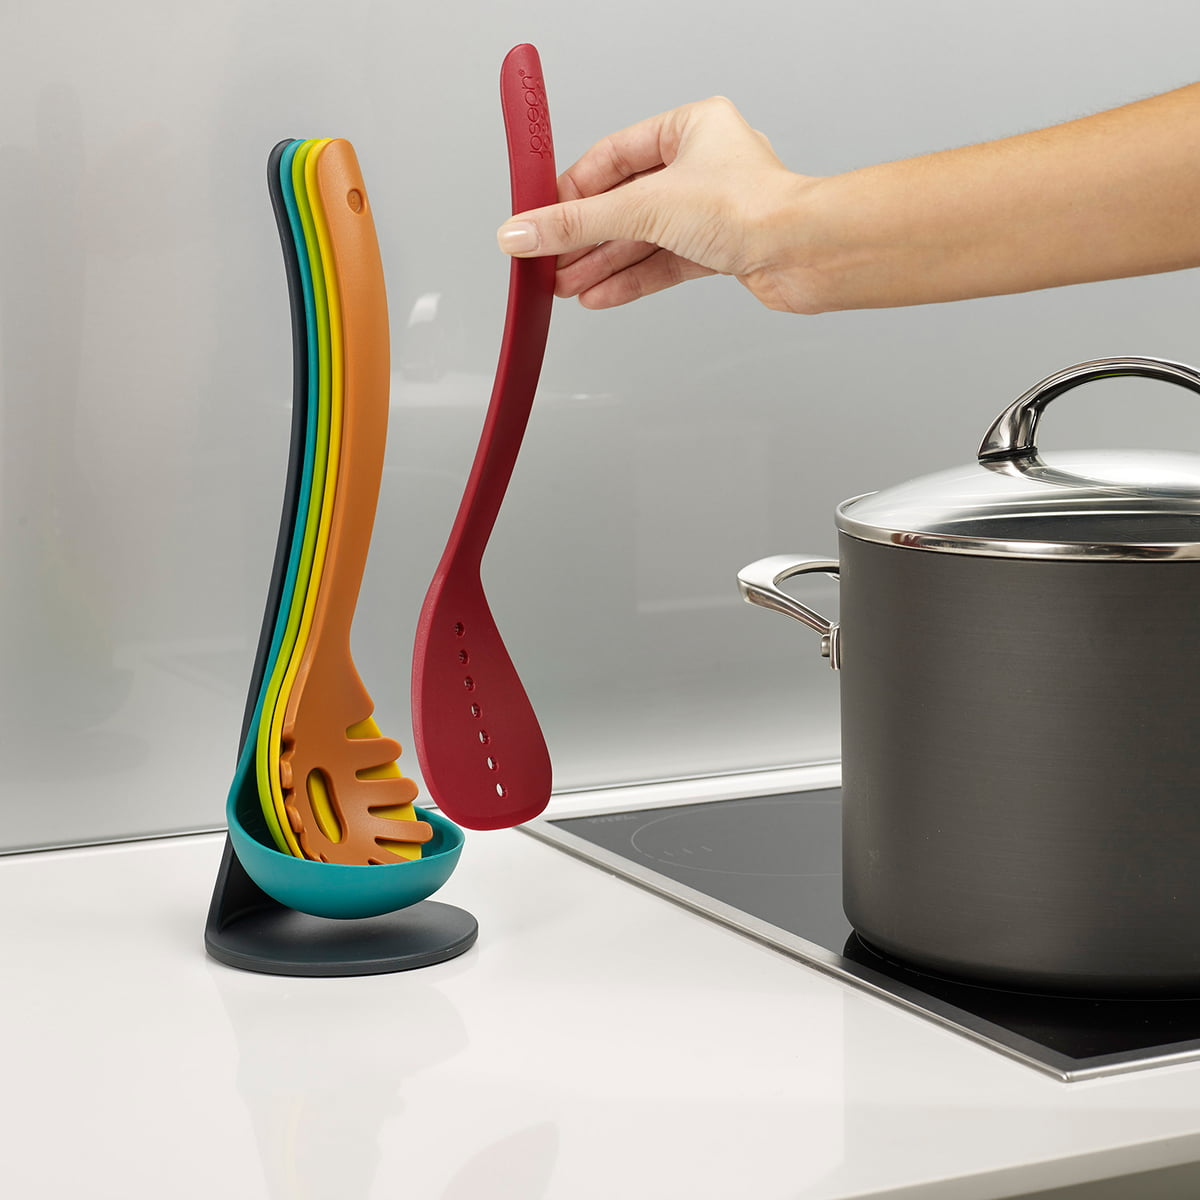 Many Kitchen Tools That Take Up Only Little Room · Joseph ...